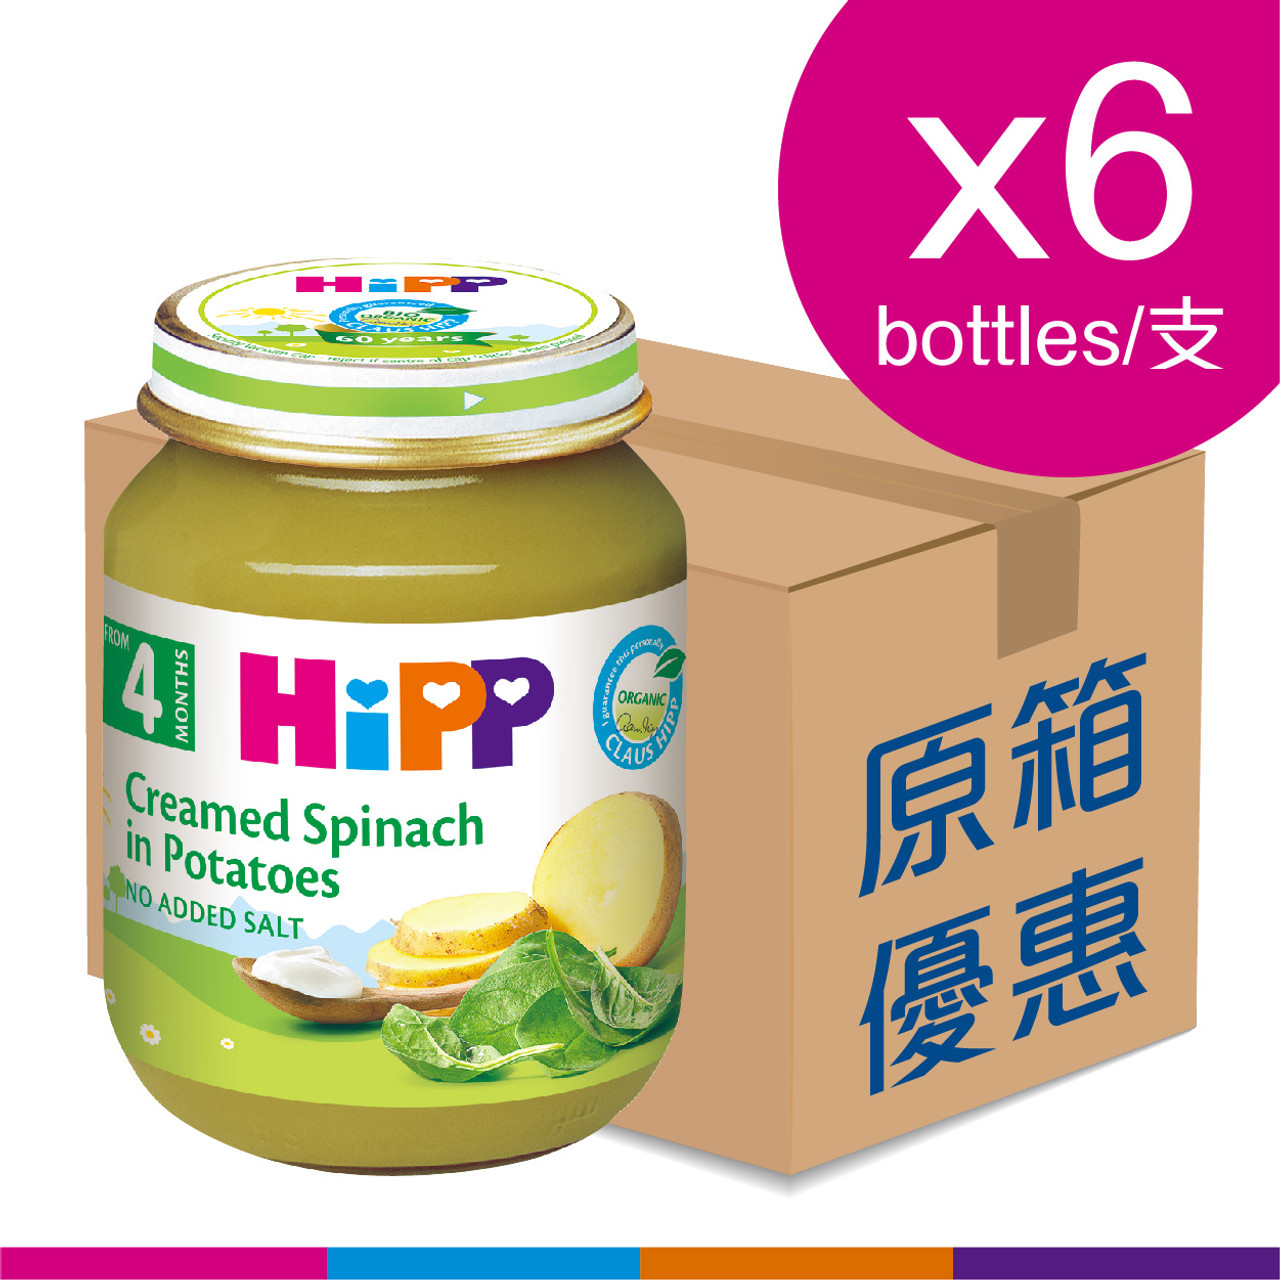 HiPP 喜寶有機忌廉菠菜馬鈴薯 (125克) 6樽裝 (圖片只供參考) | HiPP Organic Potatoes with spinach and vegetables (125g) 6 pcs package (Photo for reference only)